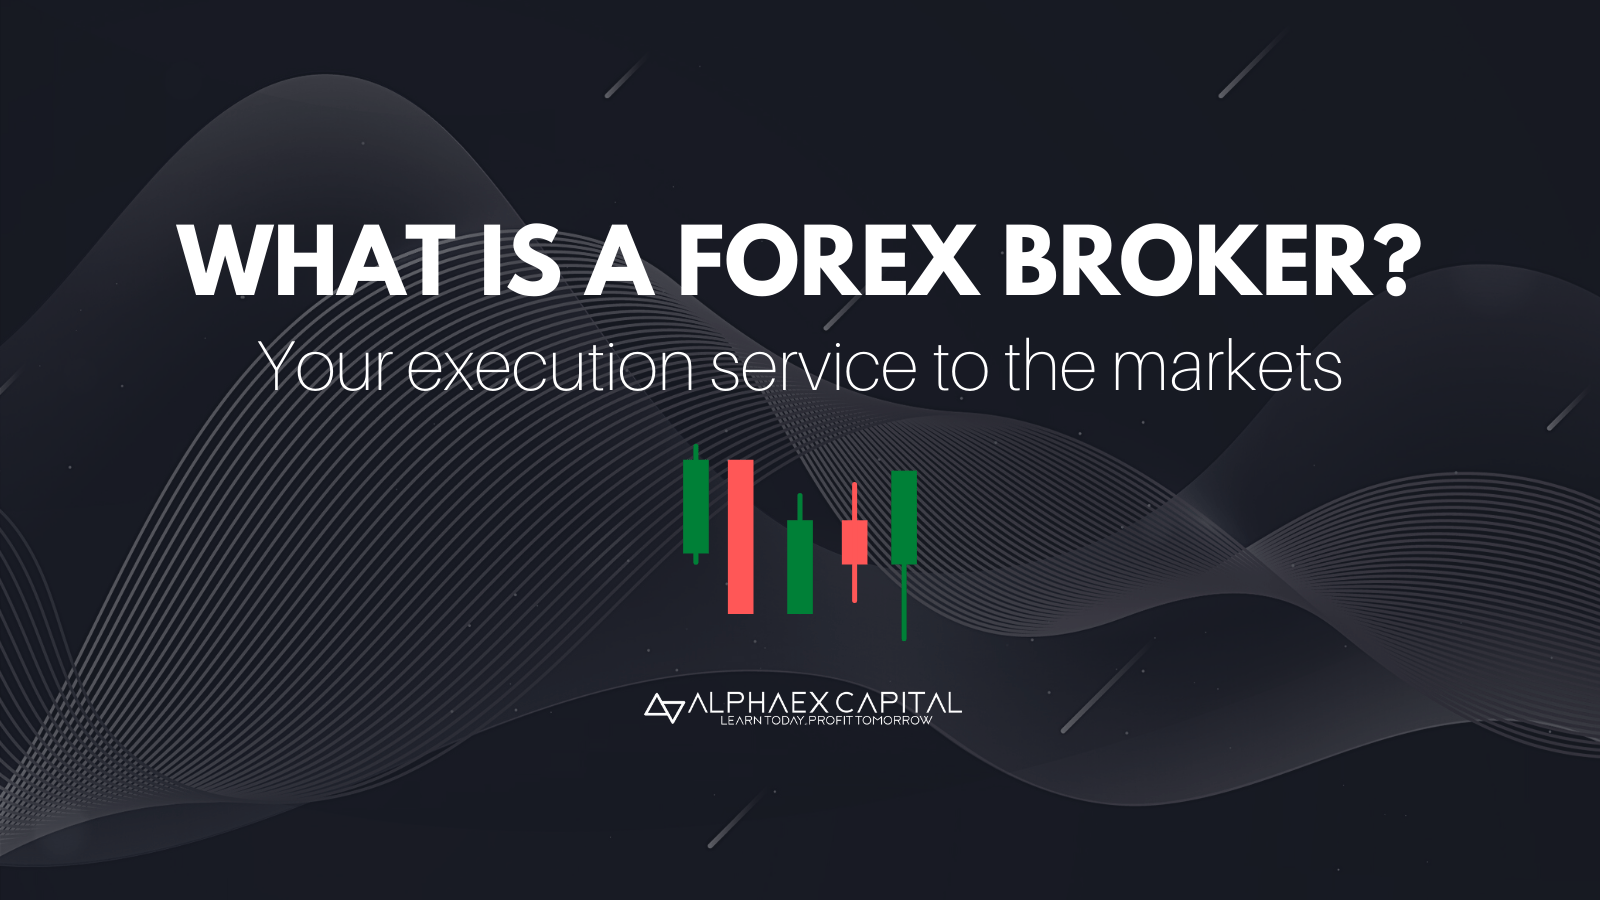 What Is A Forex Broker and Why Are They Needed